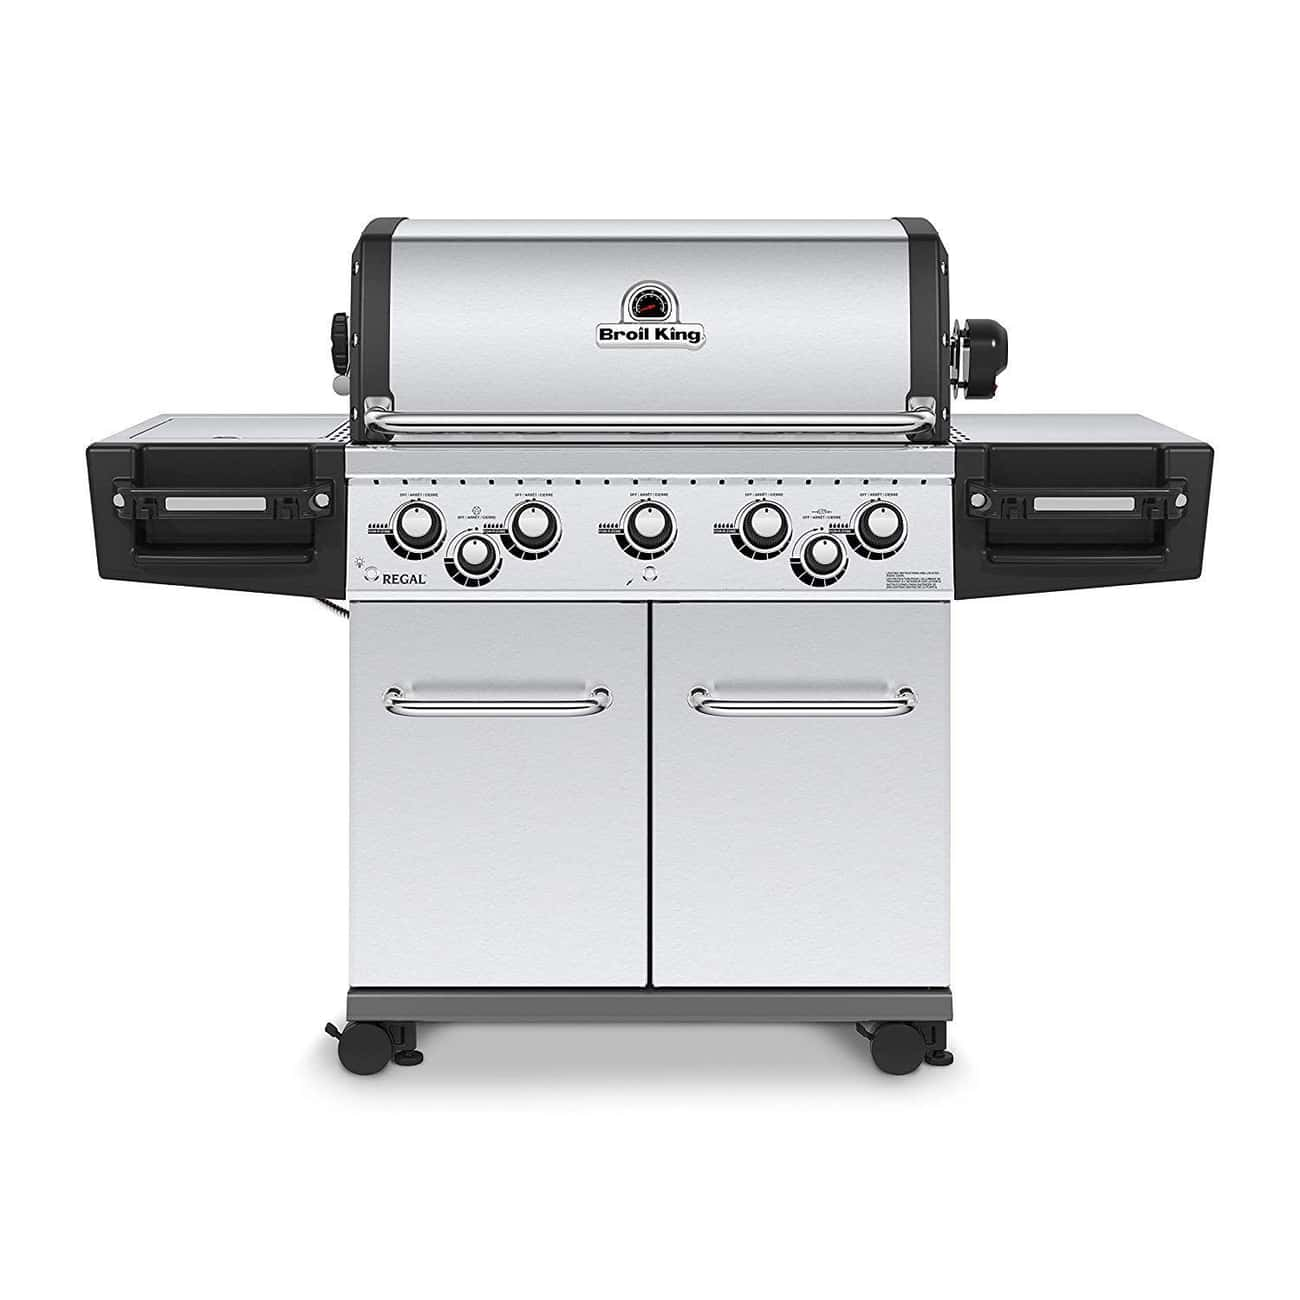 Broil King Regal Pro Gas Grill is listed (or ranked) 1 on the list These Gas Grills Prove Propane Is Way Better Than Charcoal